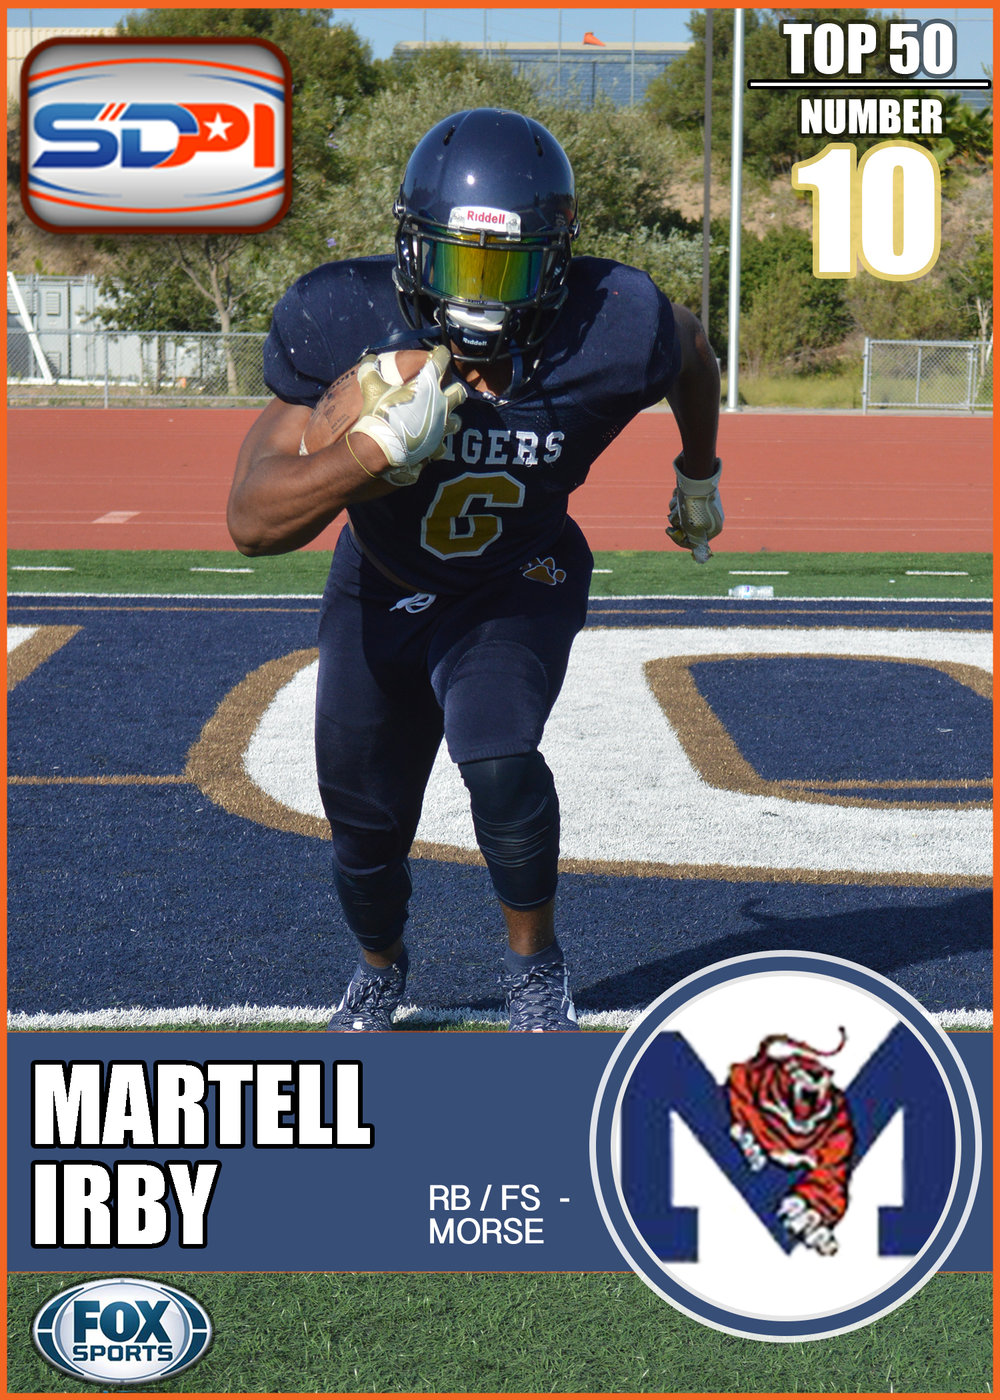 - Martell was one of the most dominant running backs in the SD Section last season. Just a handful of his notable stats from 2016 include 8.5 yards per carry, over 150 rushing yards per game, 22 rushing TD's, five successful two-point conversions, and six catches for over 25 yards per reception. Look out, Irby paired with top-50 senior teammate, Tim Patrick, makes for a scary-great Morse offense in 2017.